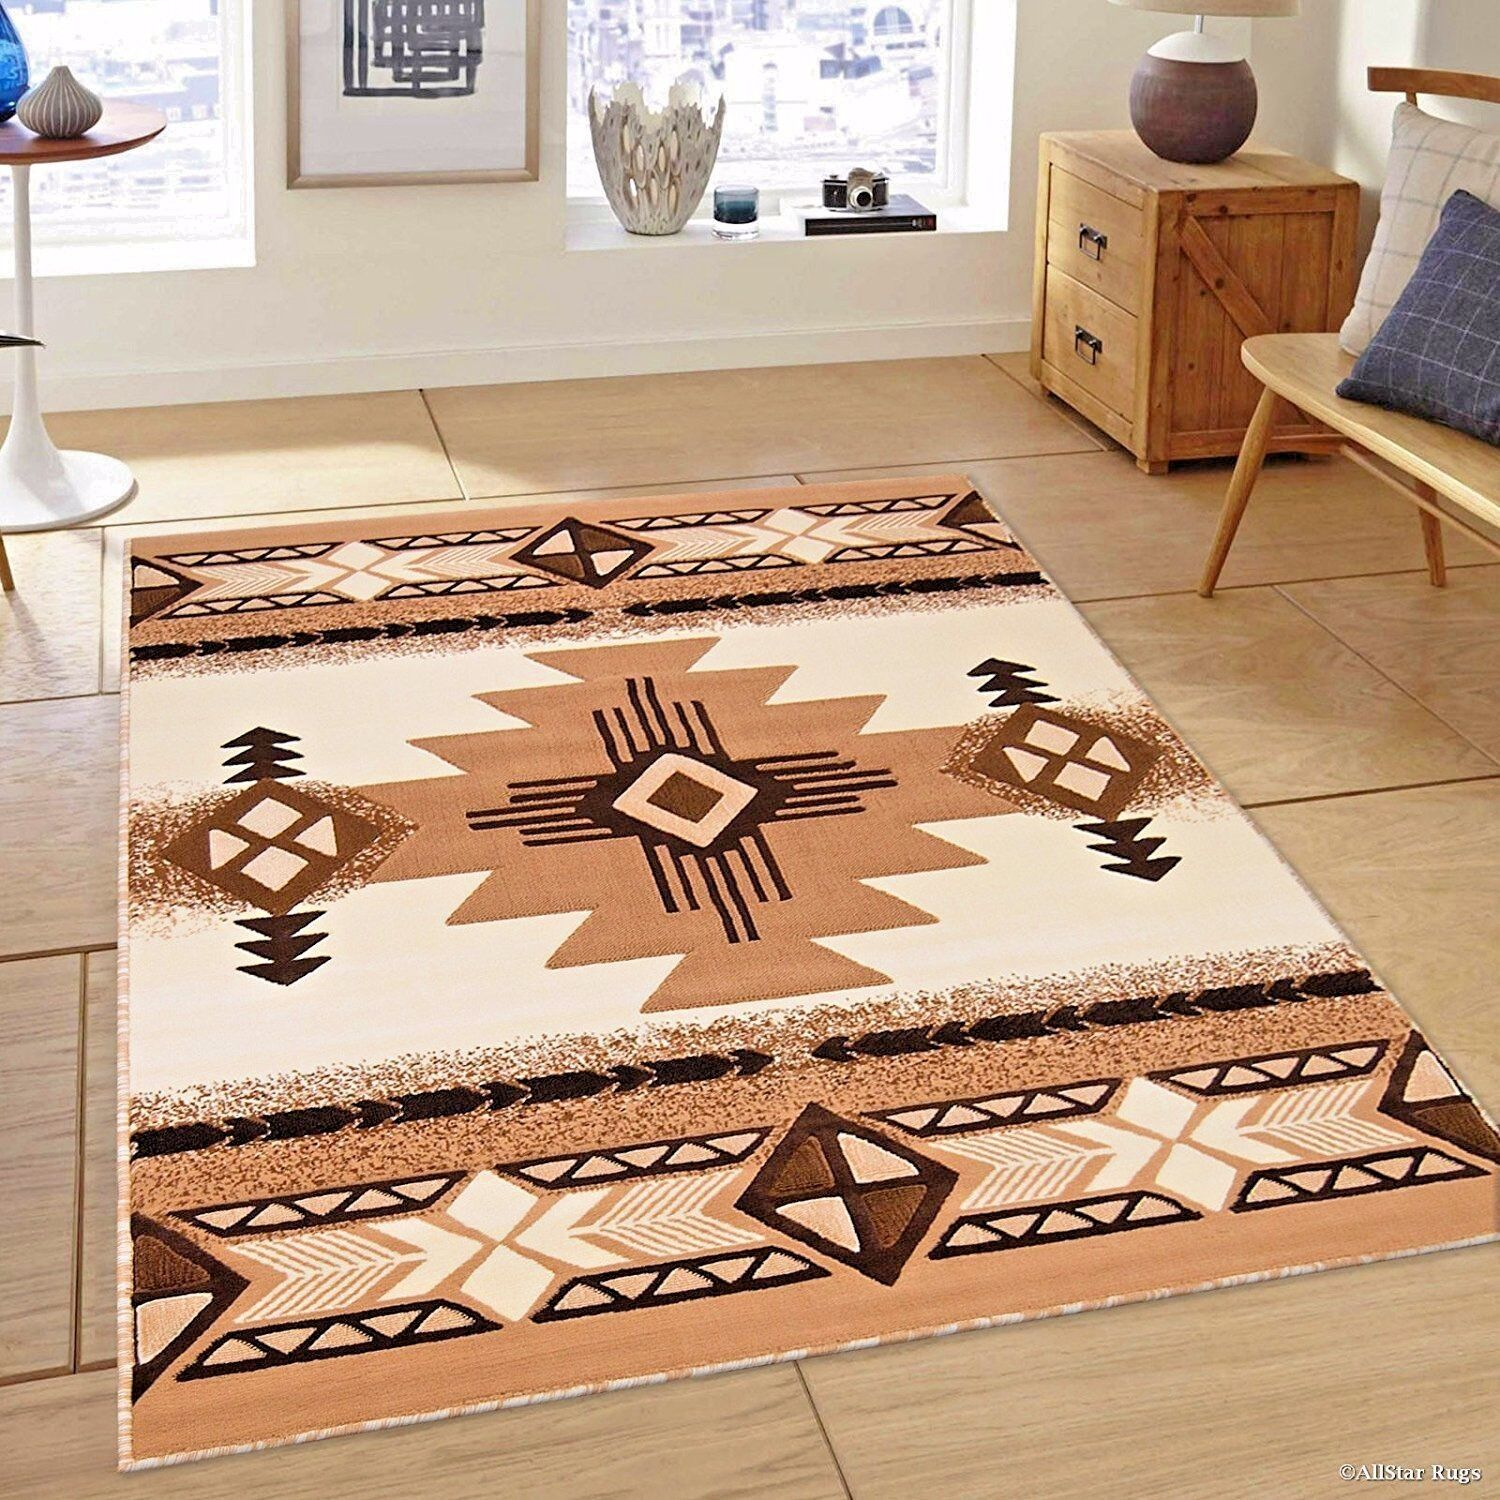 Details About Rugs Area 8x10 Rug Carpets Large Southwestern Native American New